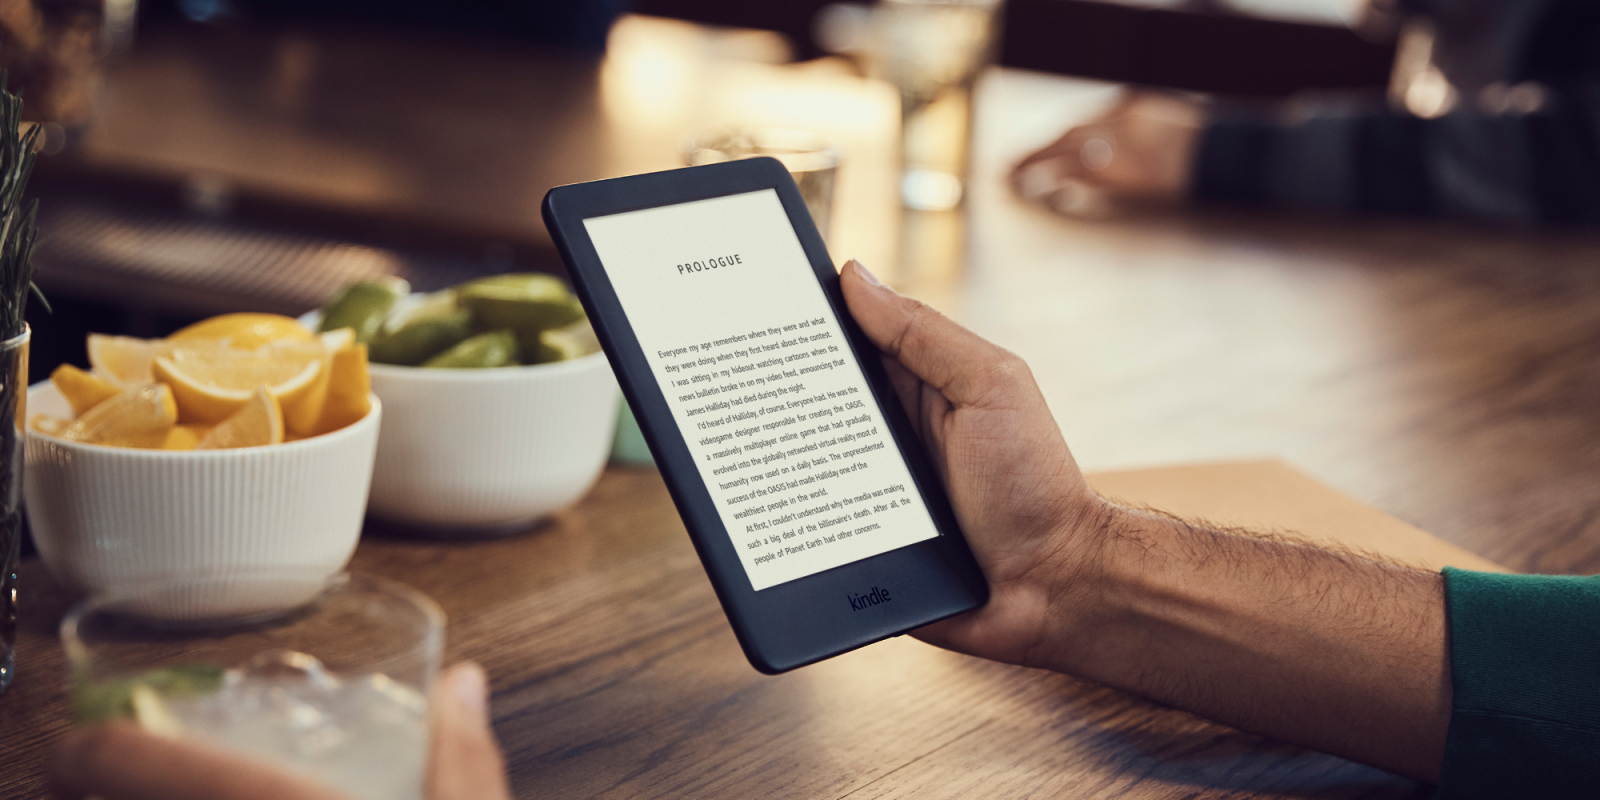 Amazon All New Kindle enters as a more affordable E-reader